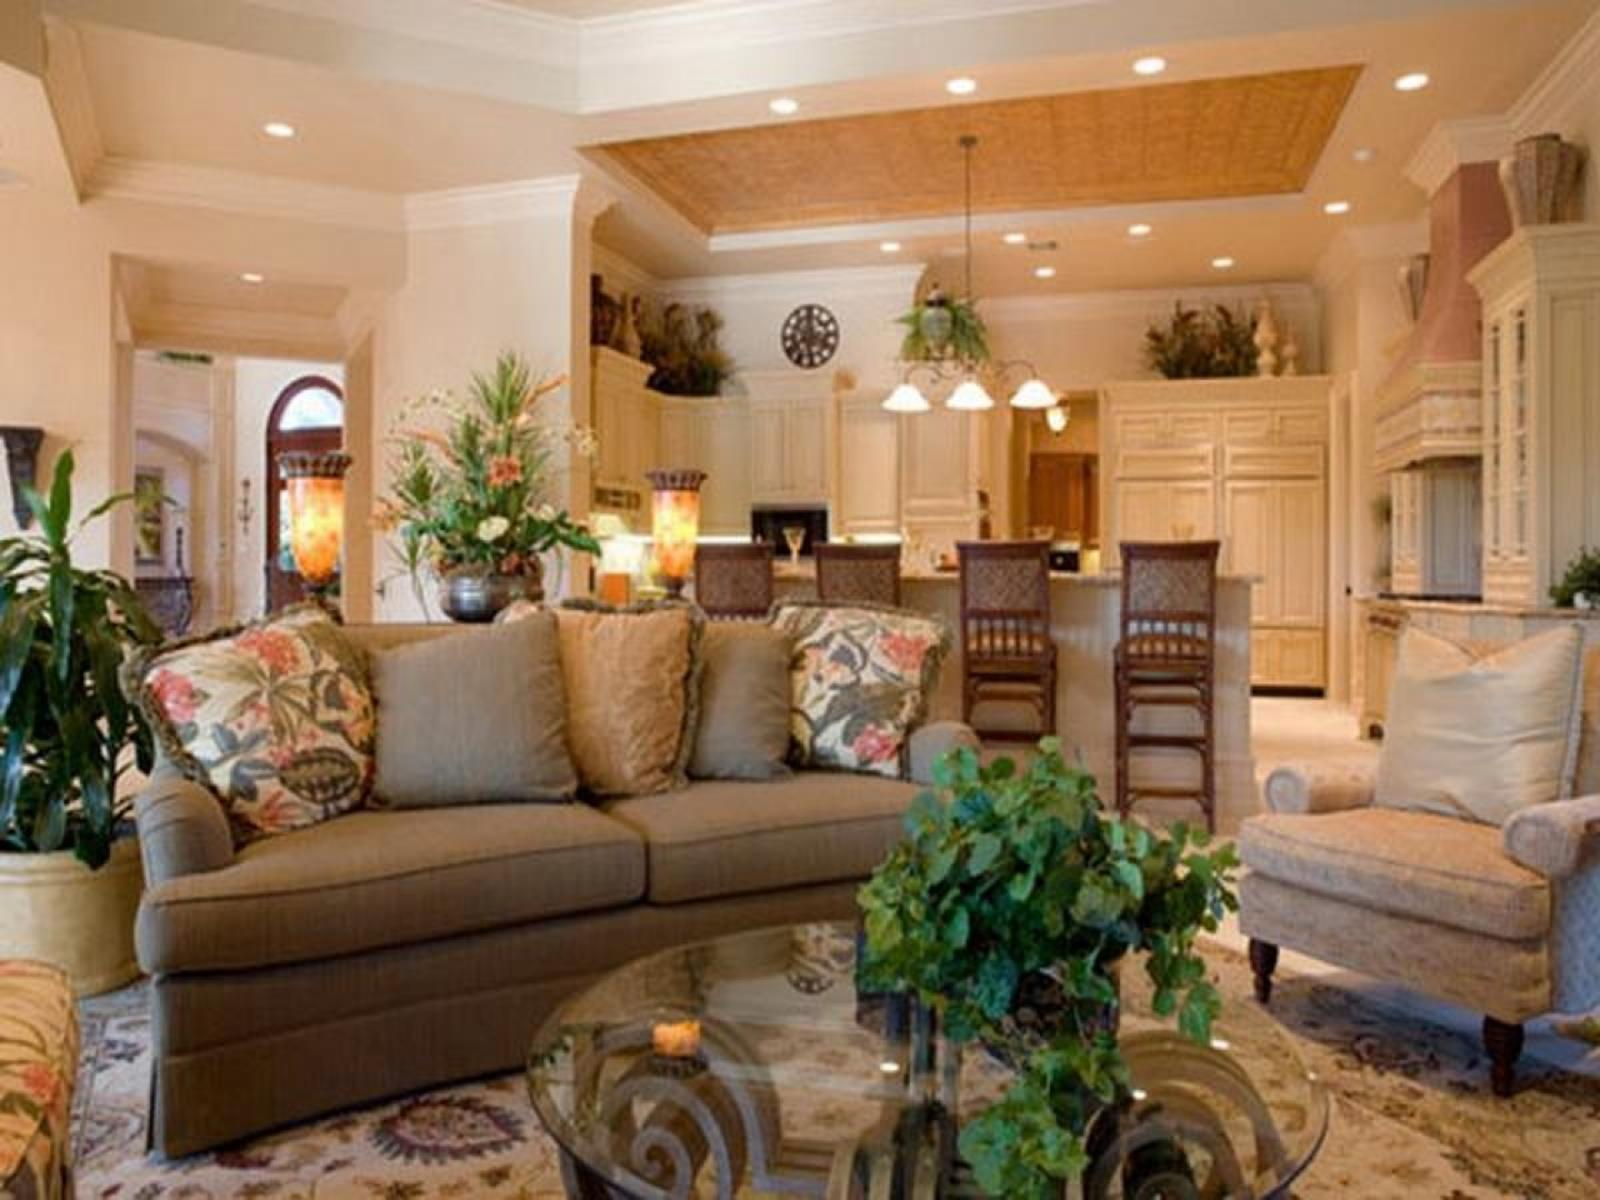 Best Neutral Paint Colors For Living Room 5